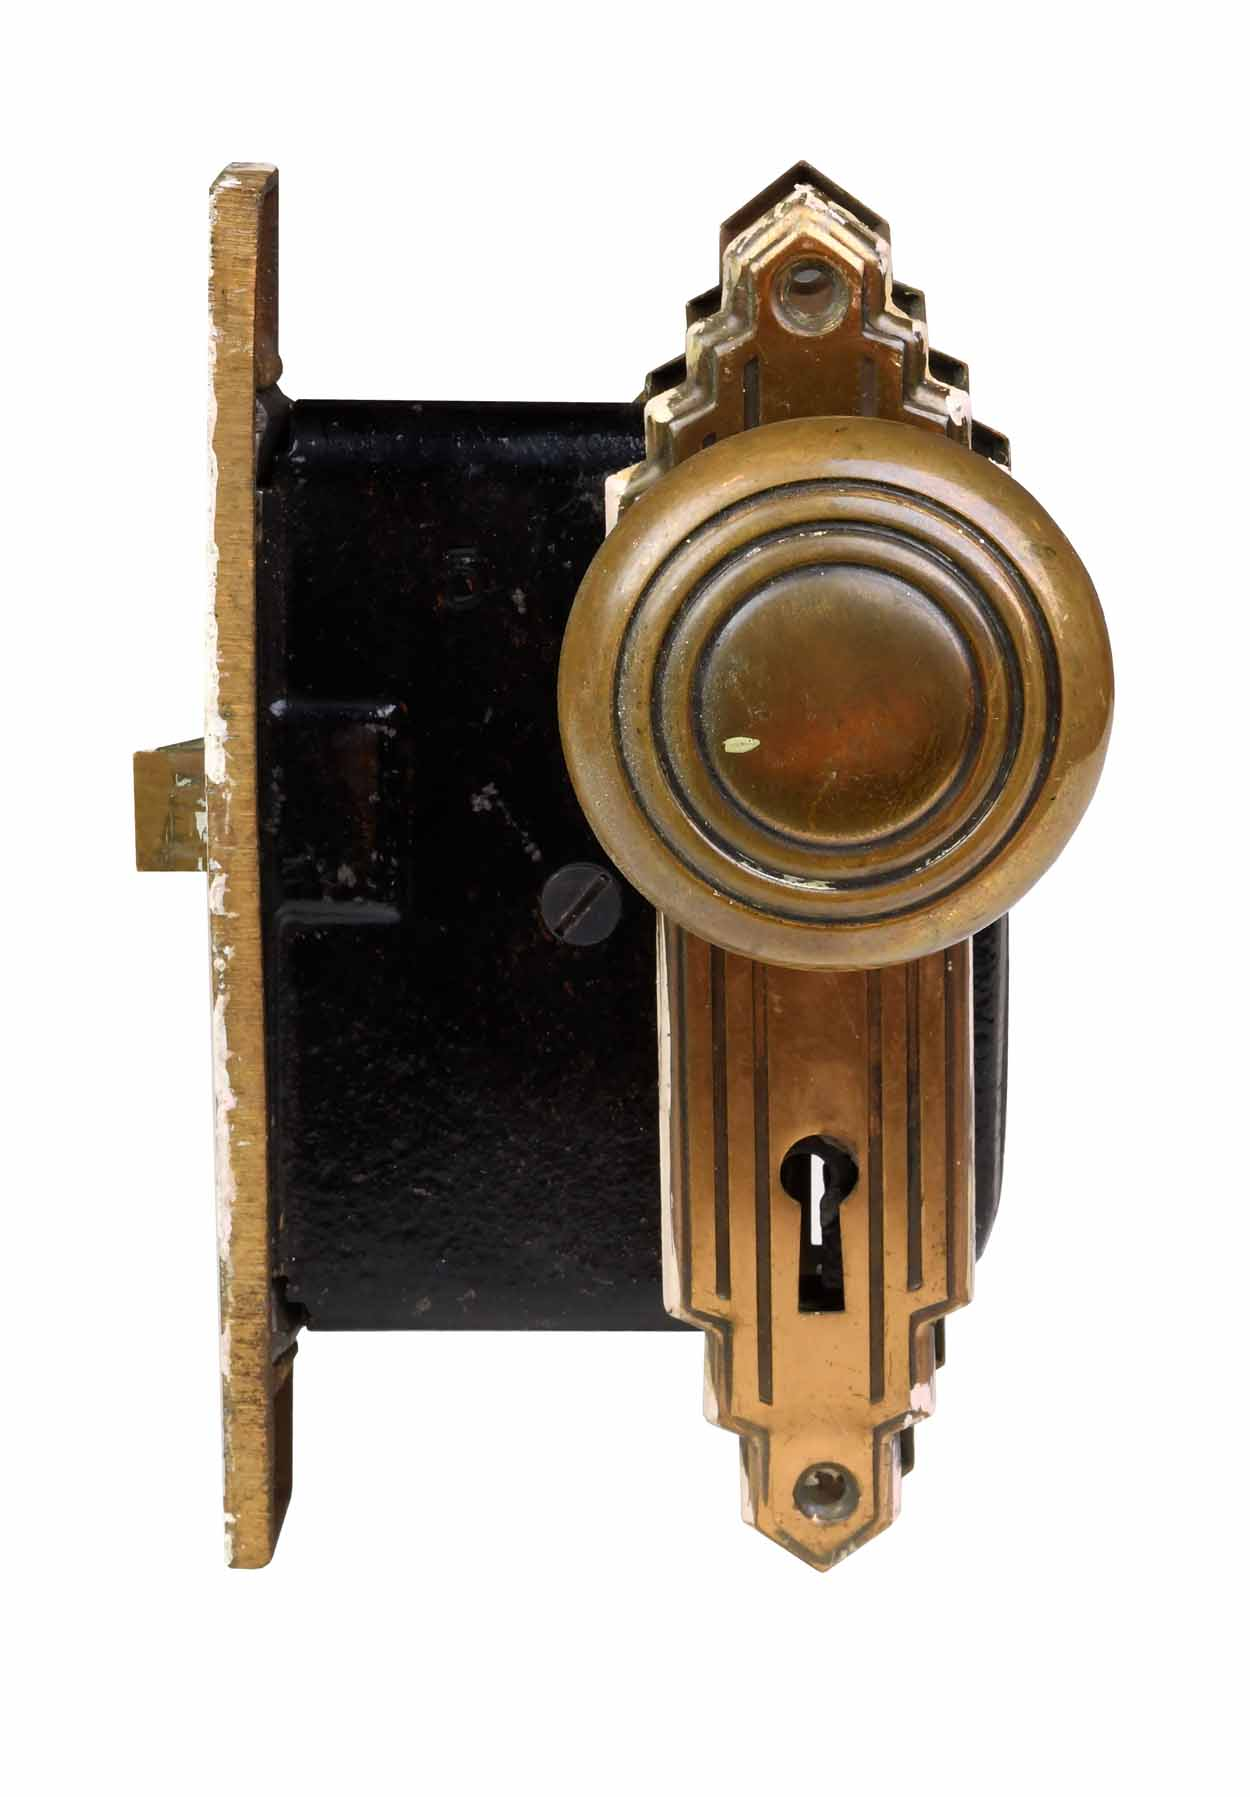 COPPER PLATED ART DECO PASSAGE KNOB SET AA# H20162   5 sets available $165.00 each set